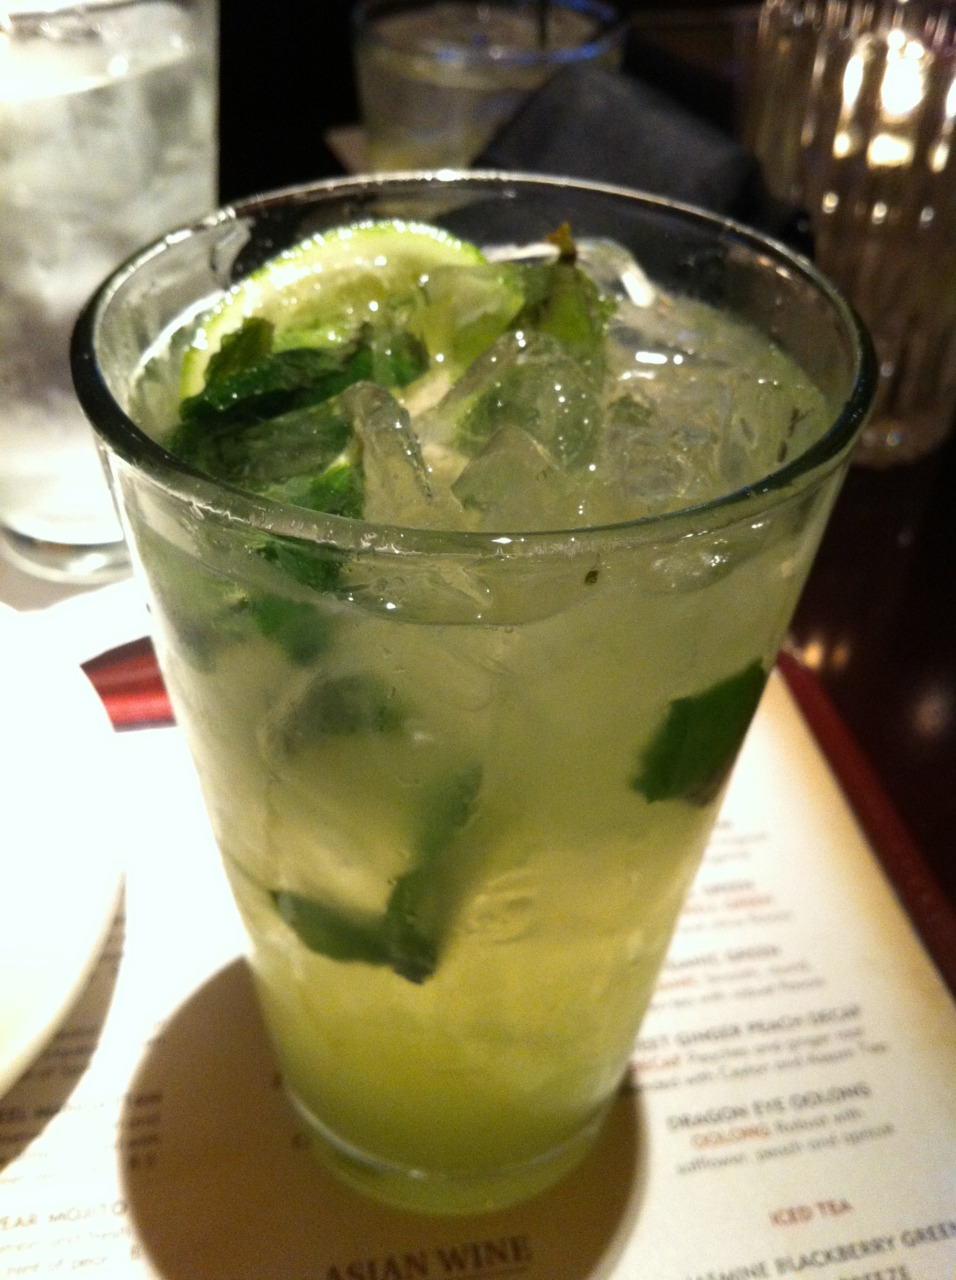 The Asian Pear Mojito at P.F. Chang's was great.